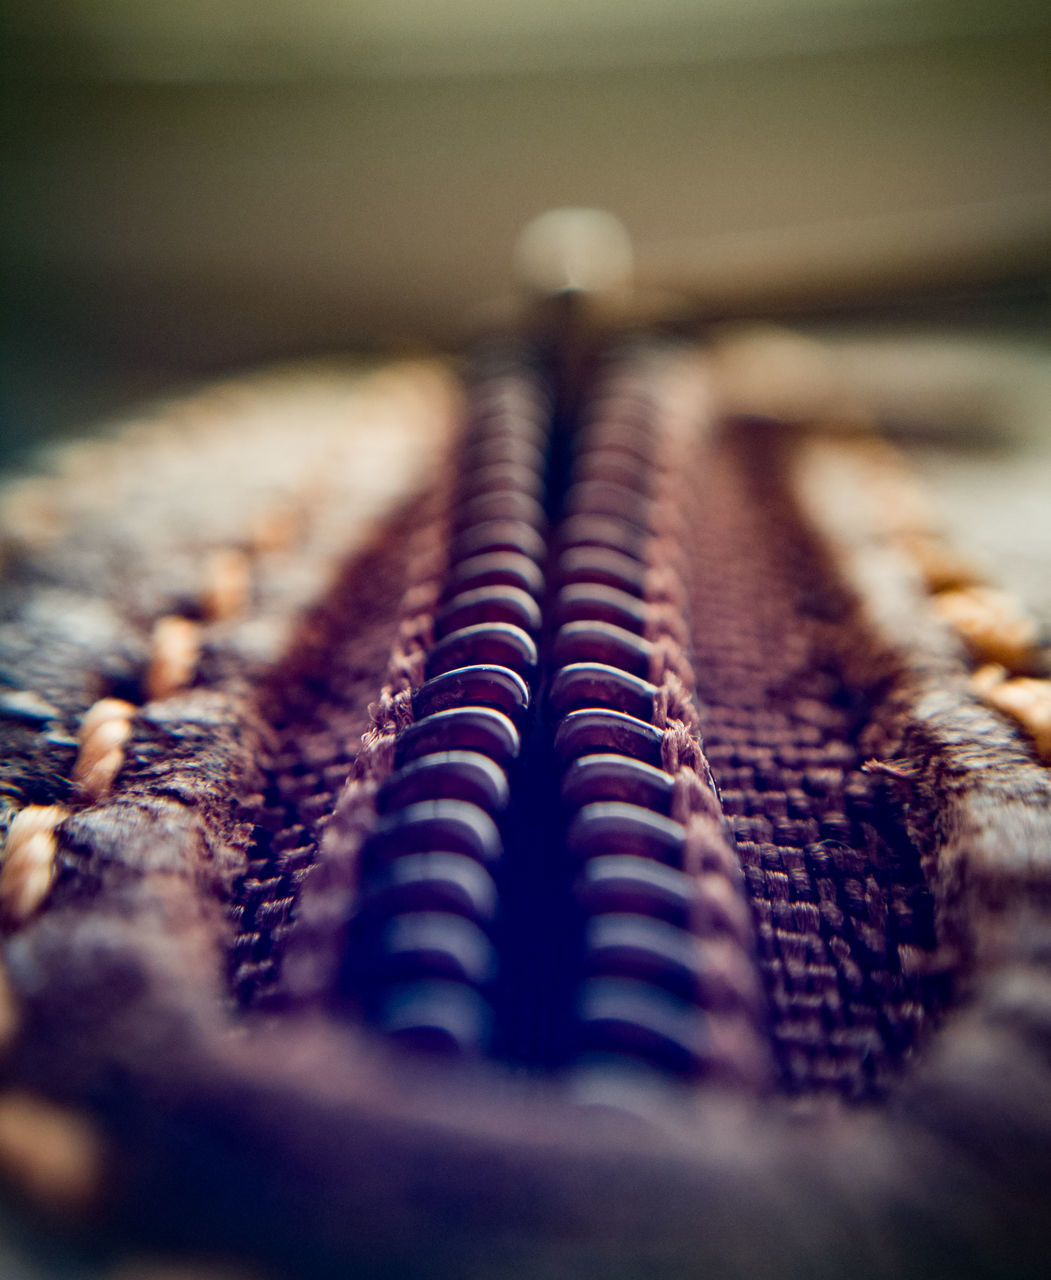 selective focus, no people, close-up, indoors, food, day